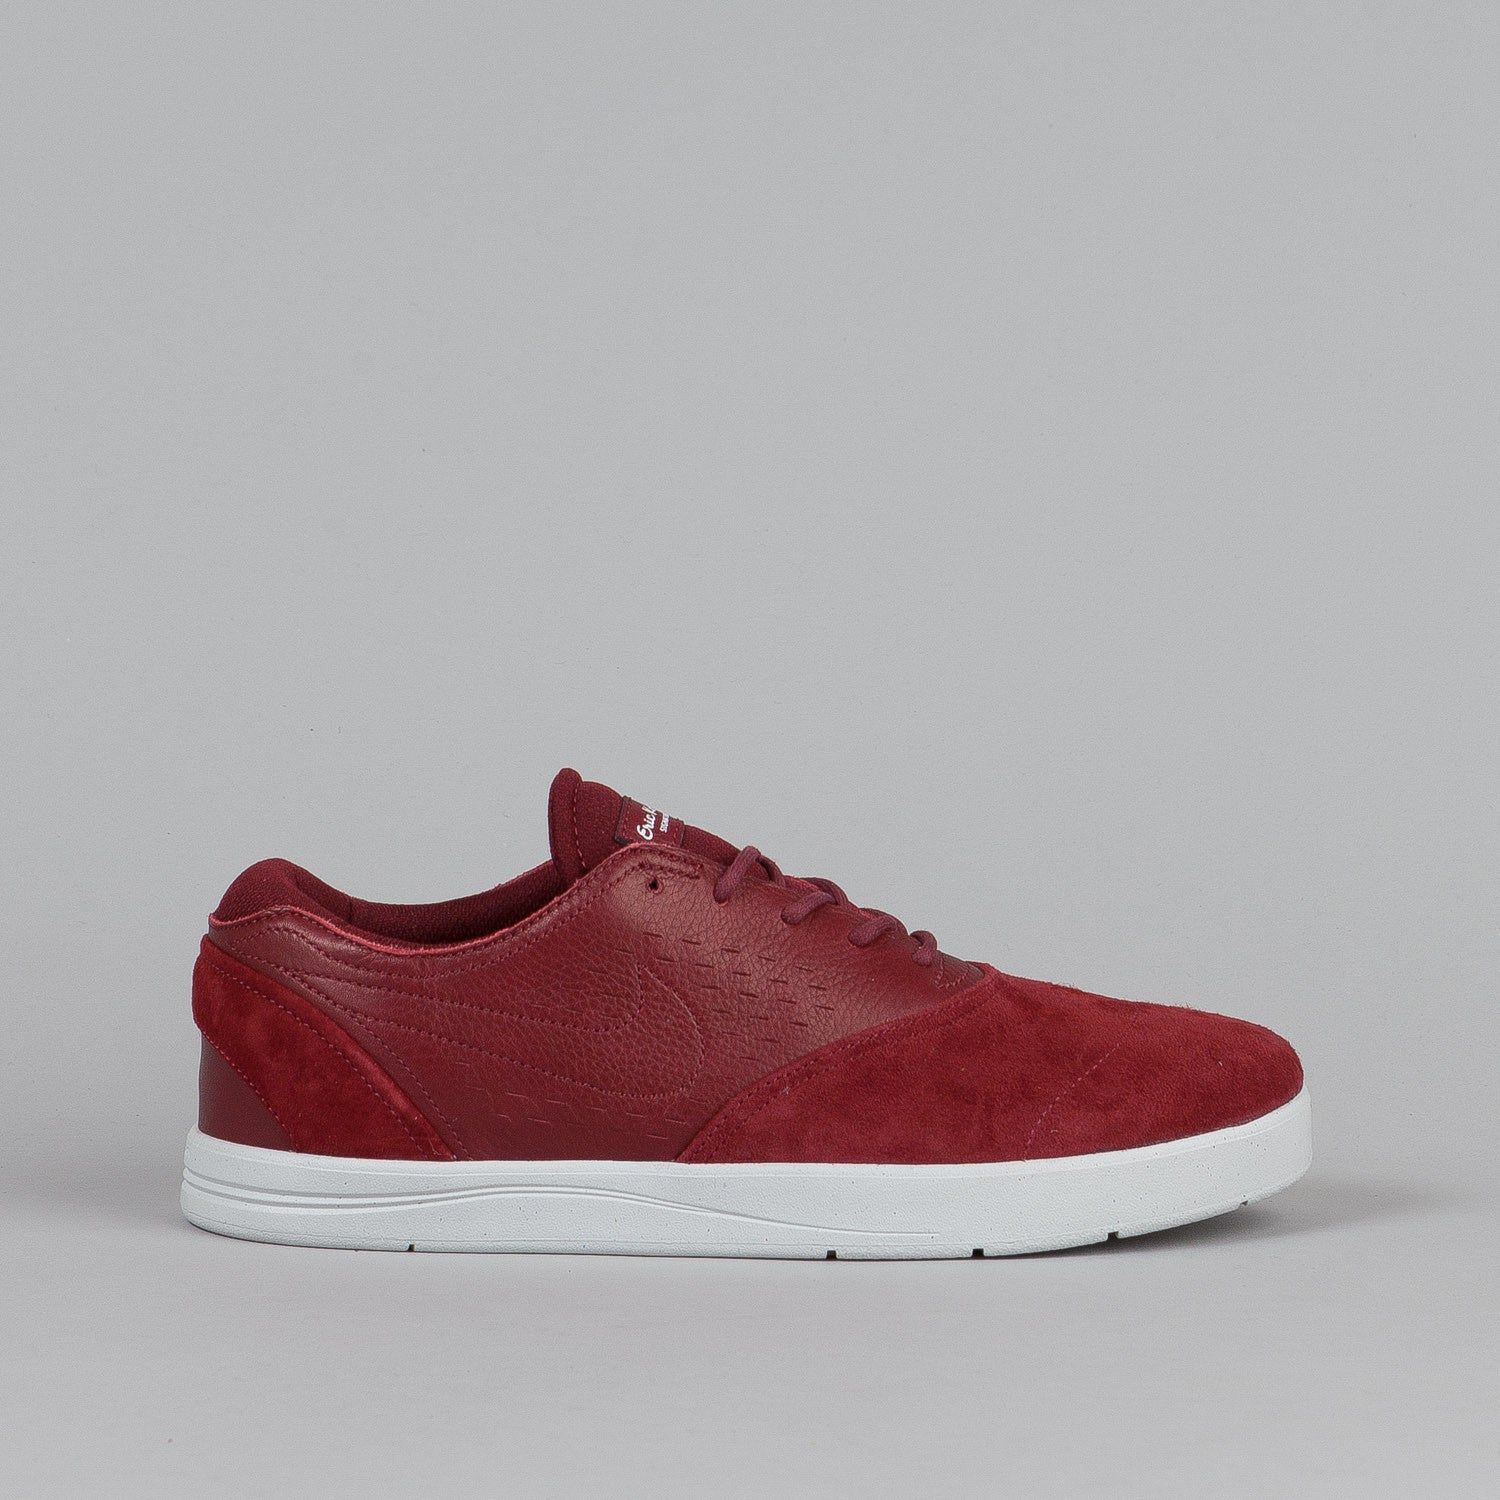 Nike SB Eric Koston 2 Premium Team Red/Team Red